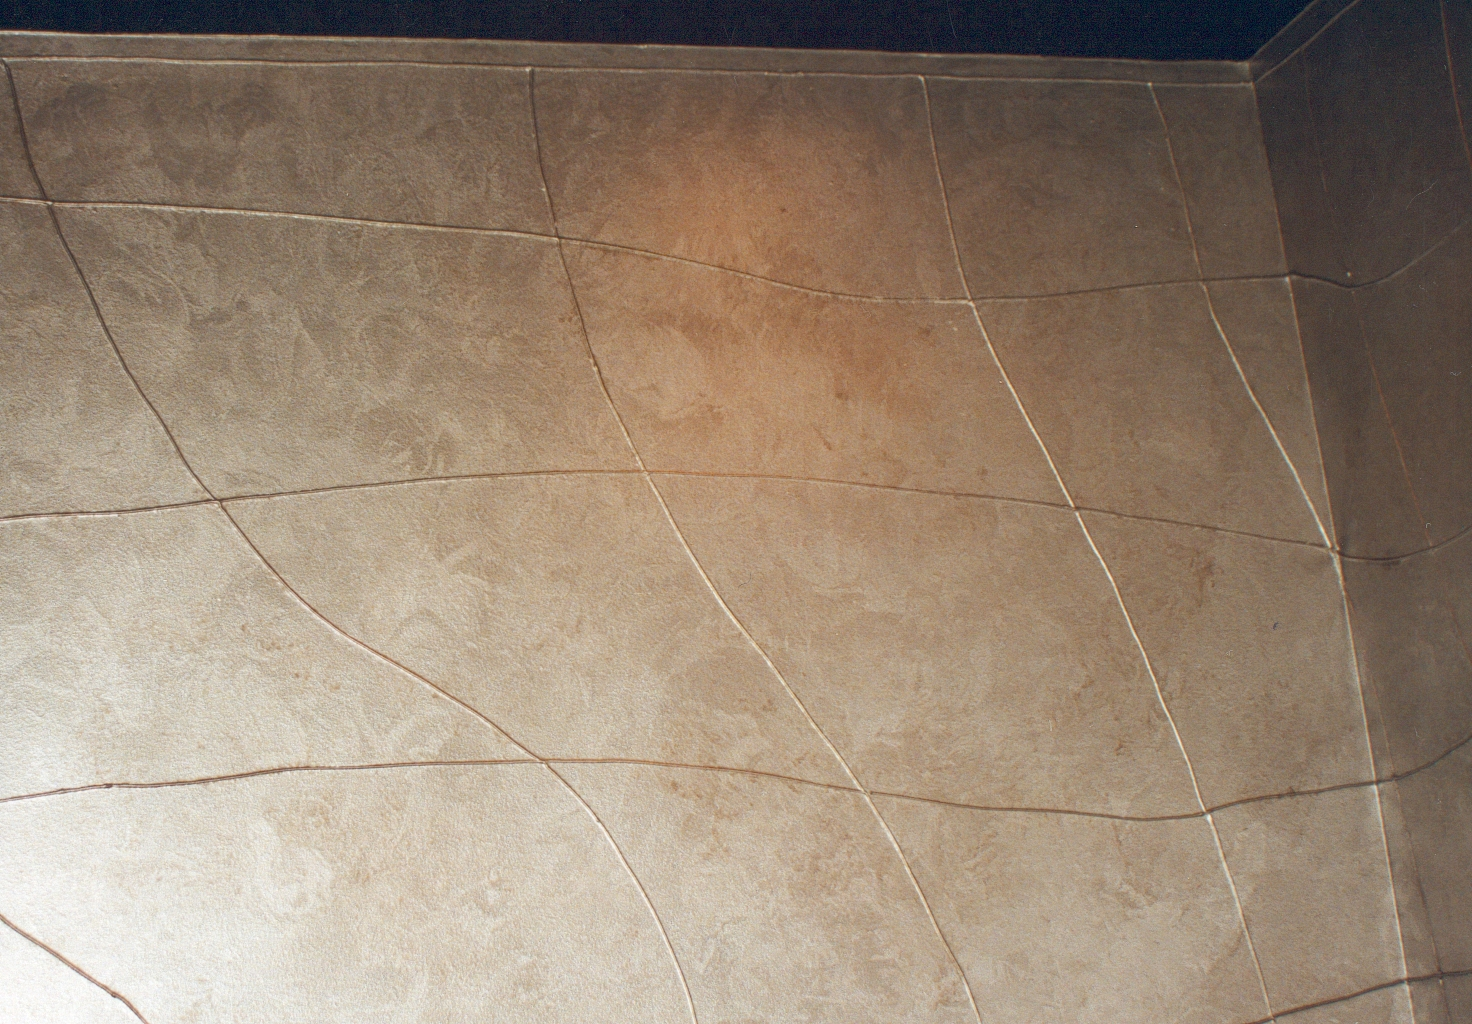 scala stucco + reflet (15)